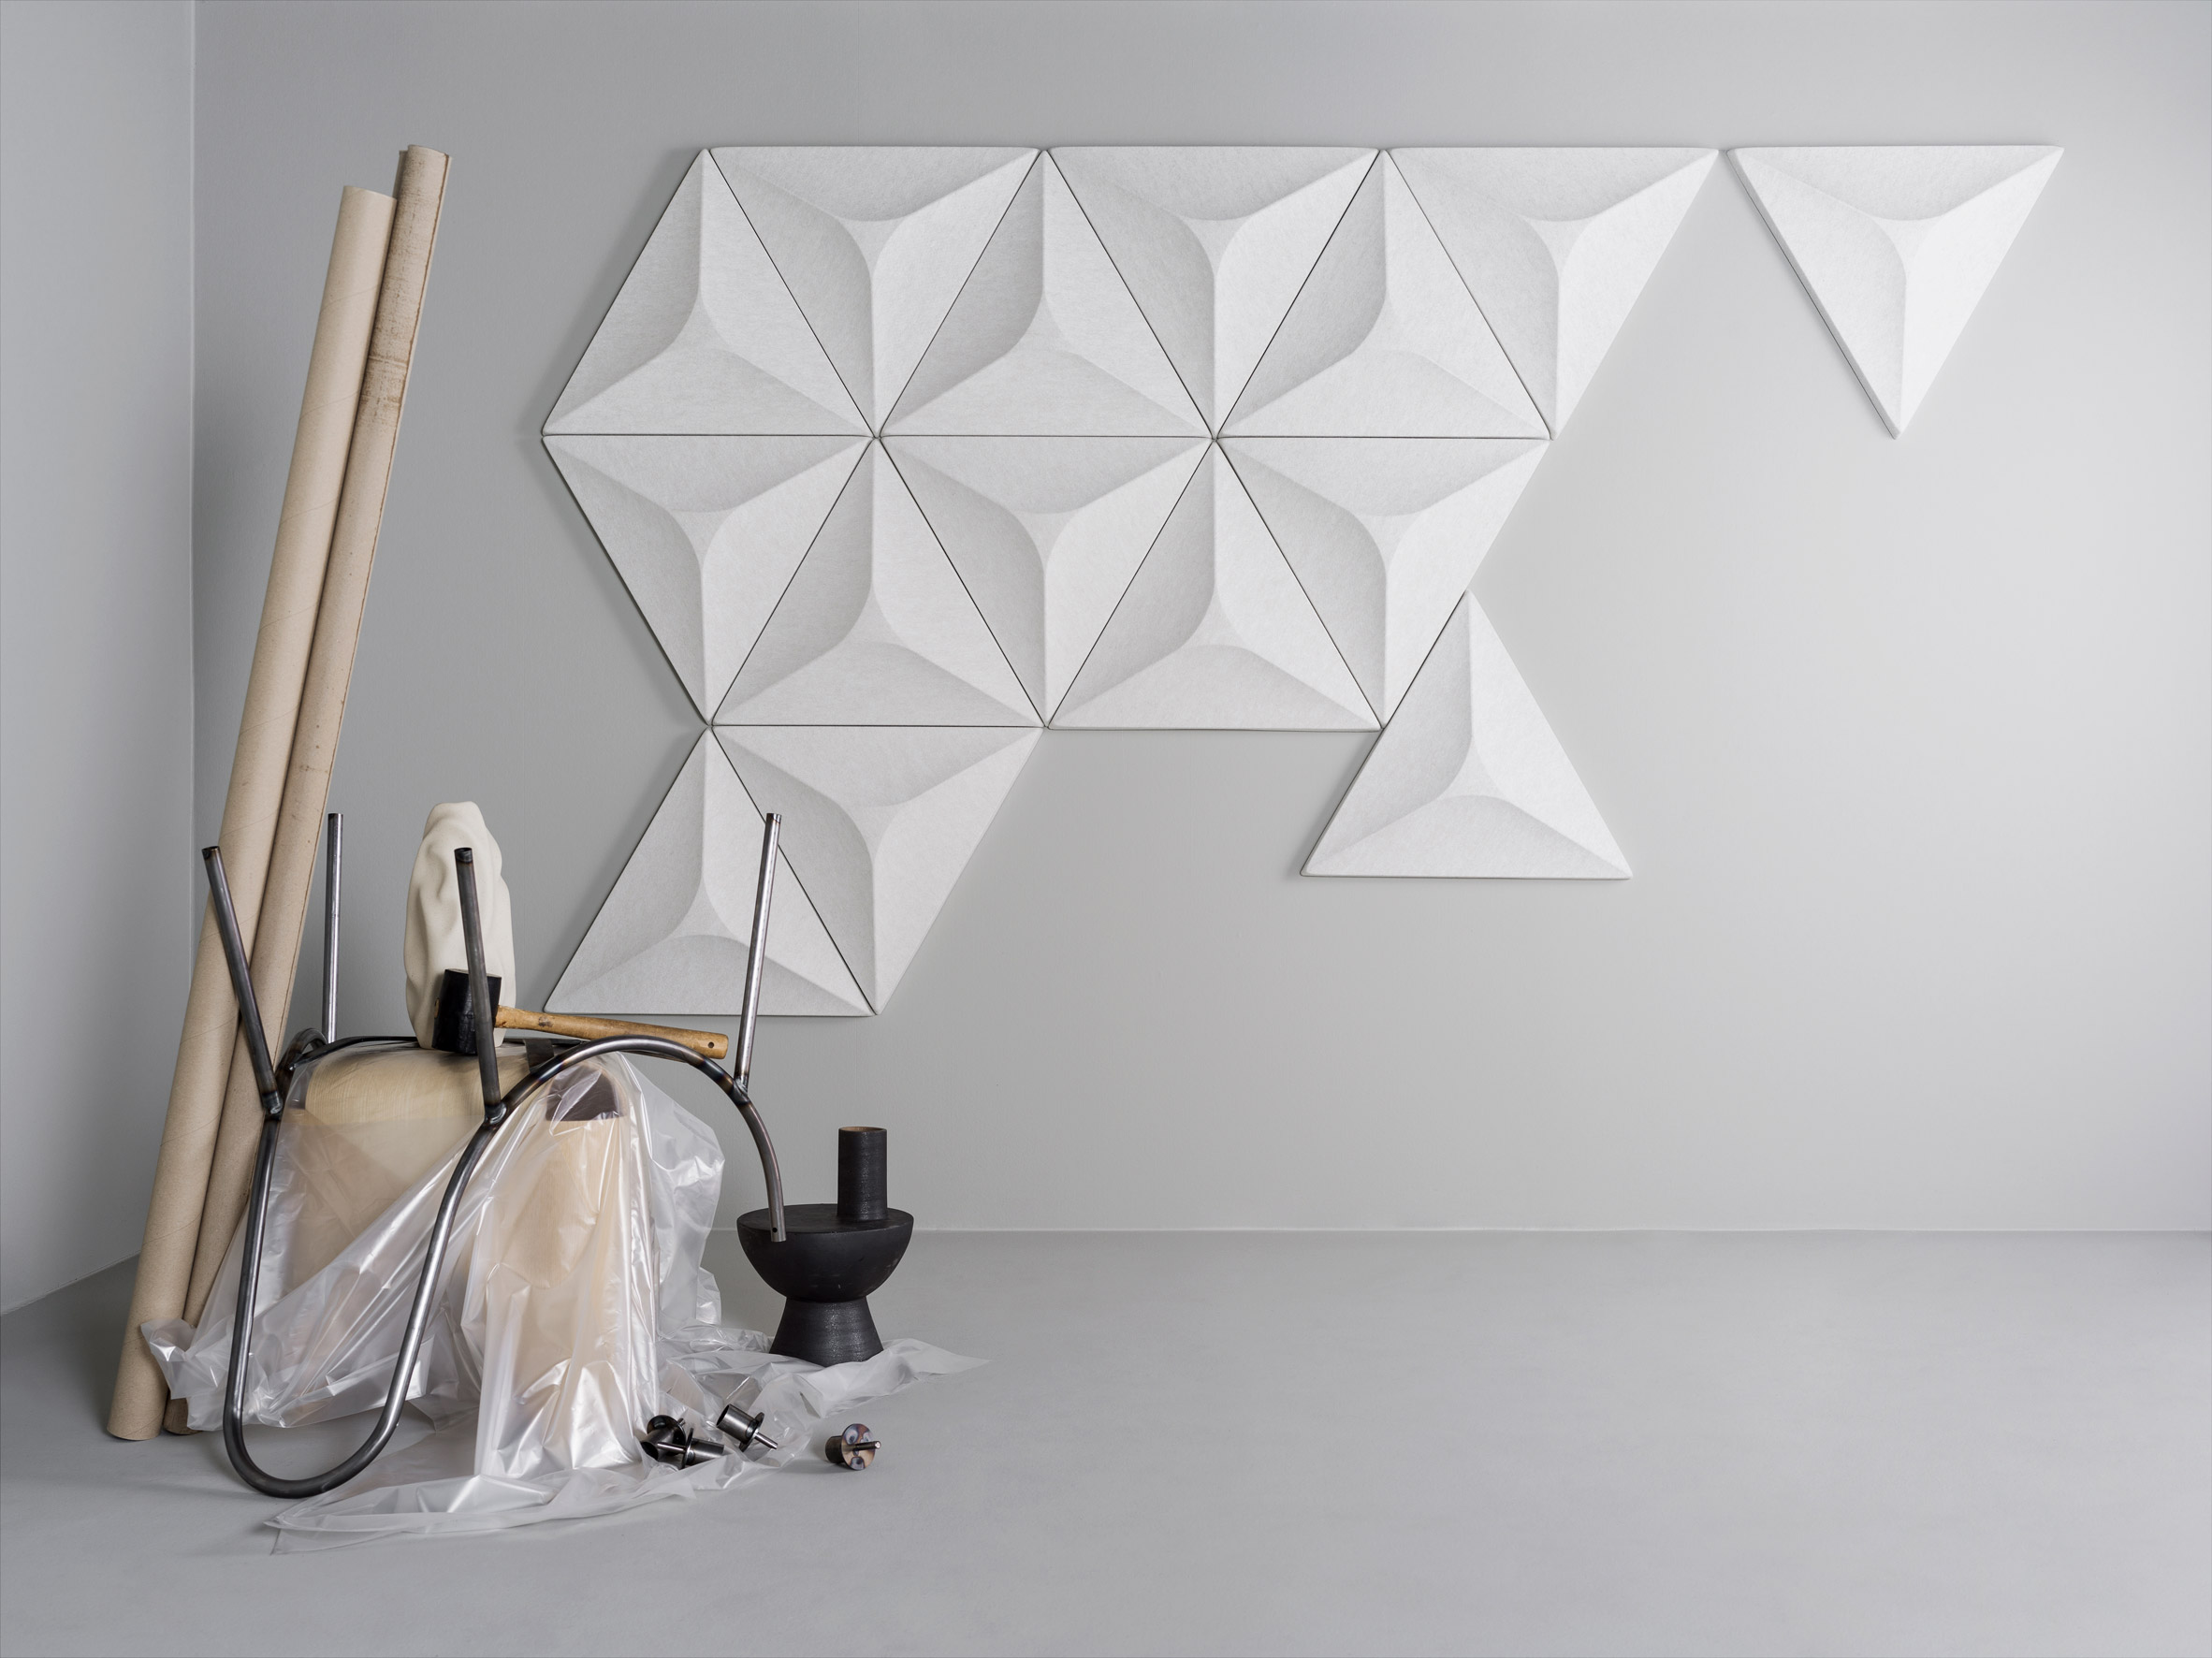 A group of white geometric acoustic panels